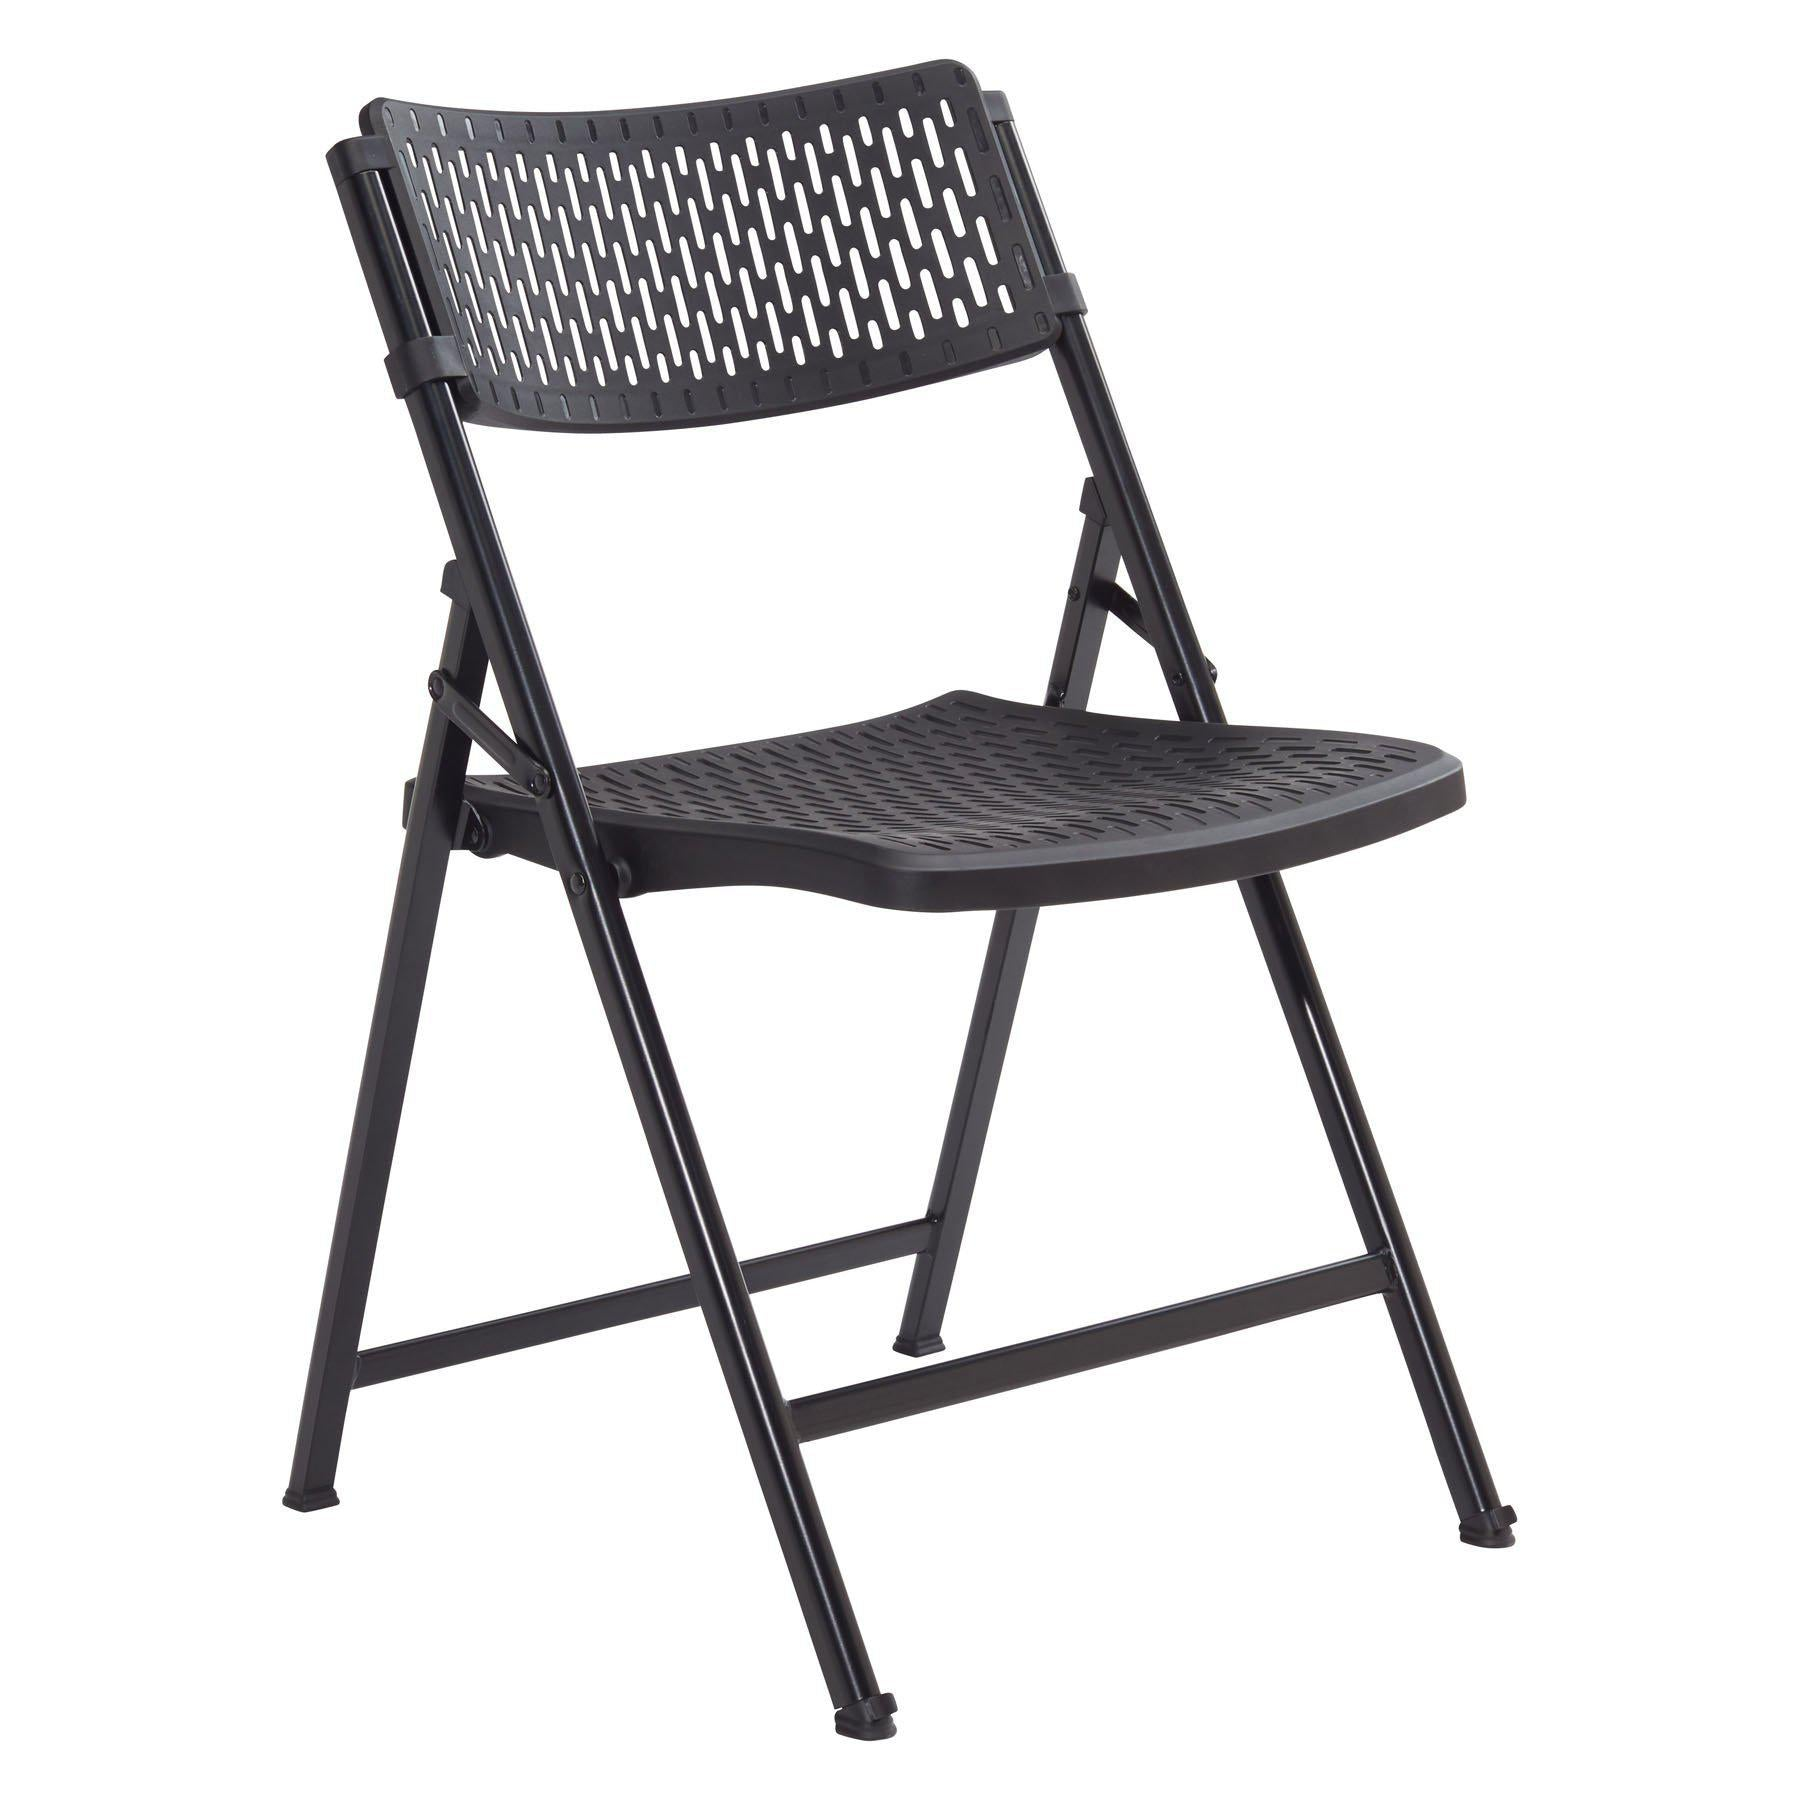 Airflex Premium Polypropylene Folding Chair, Black (Carton of 4)